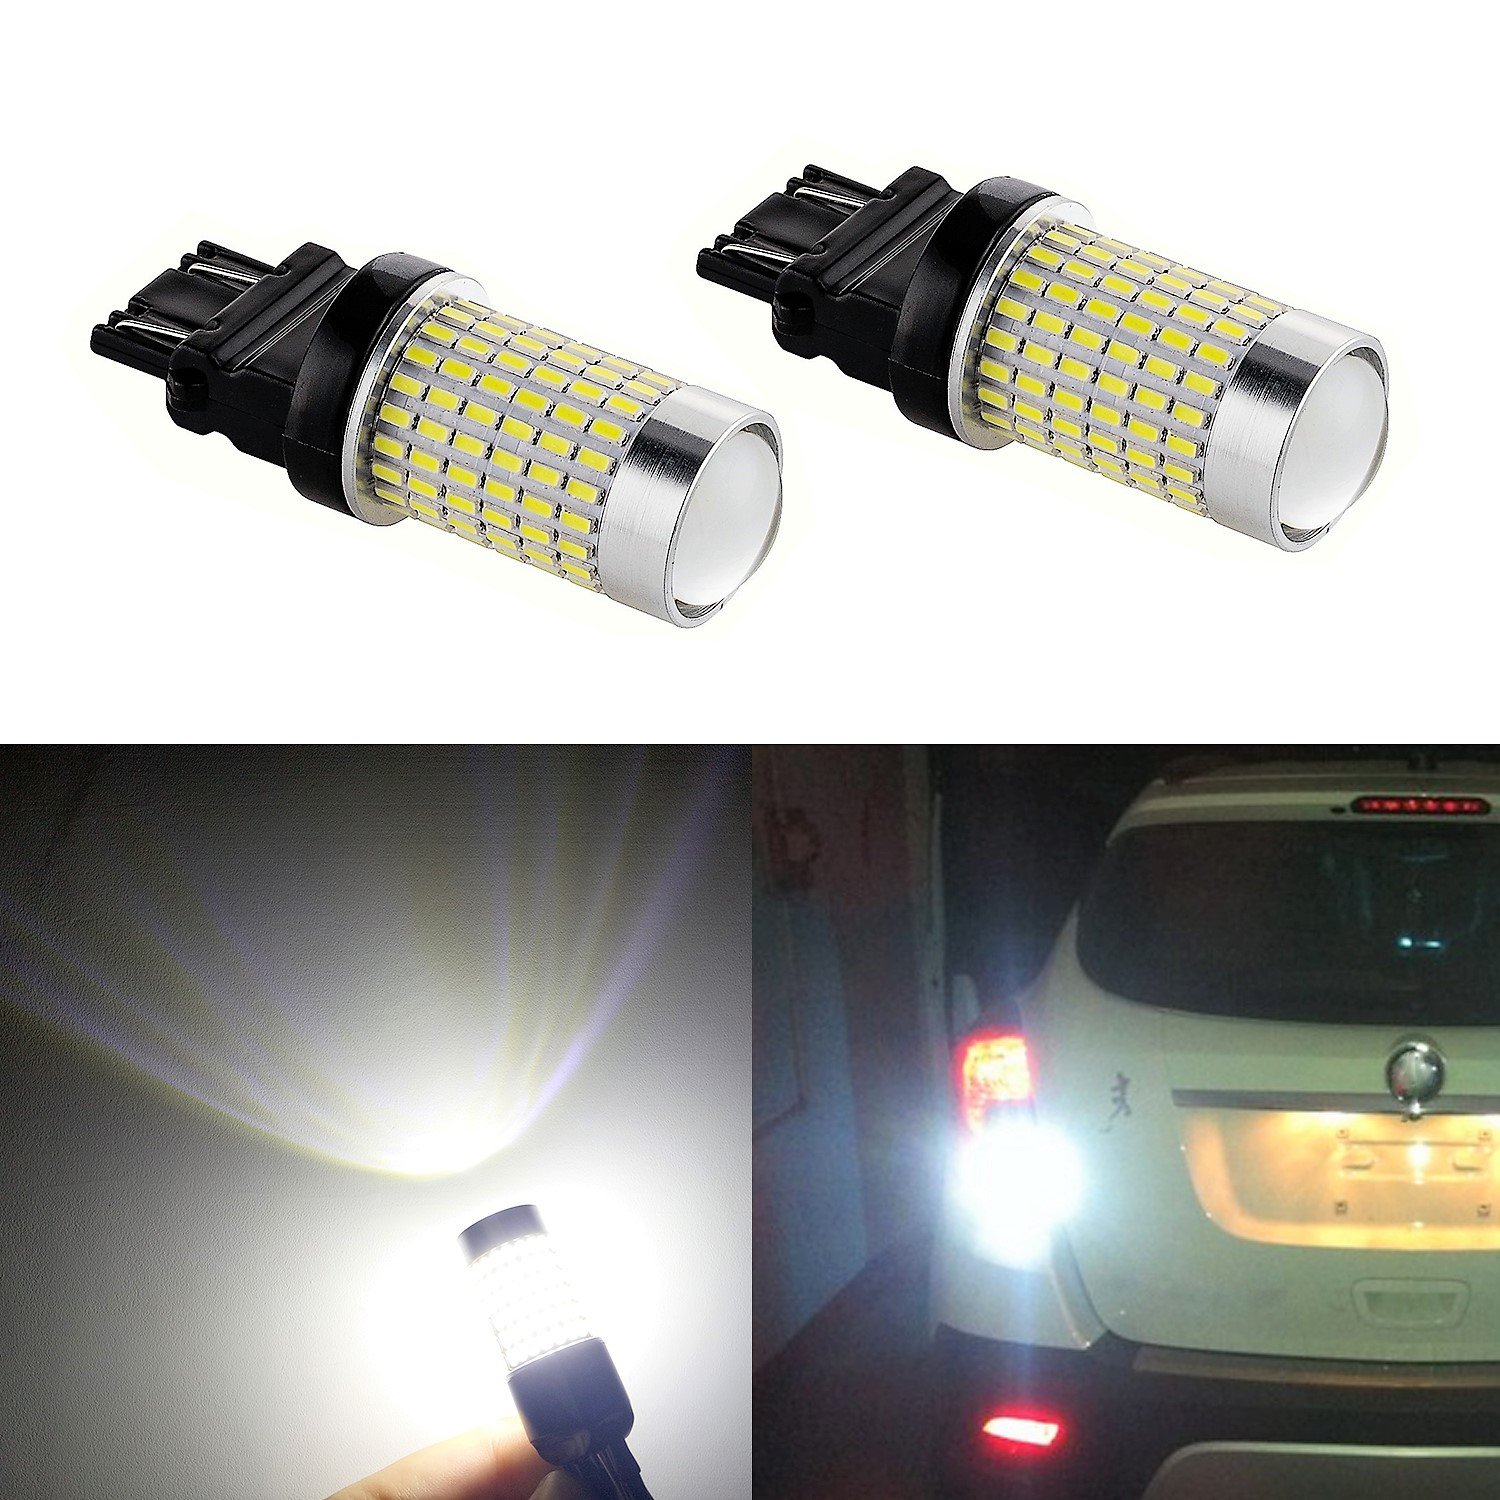 XSPEED 3157 3156 LED Light Bulb 2600 Lumens Extremely Bright 144 SE-Chipsets 3047 3057 3457 LED Bulbs with Projector Xenon White For Reverse Backup Lights 3157-144LW